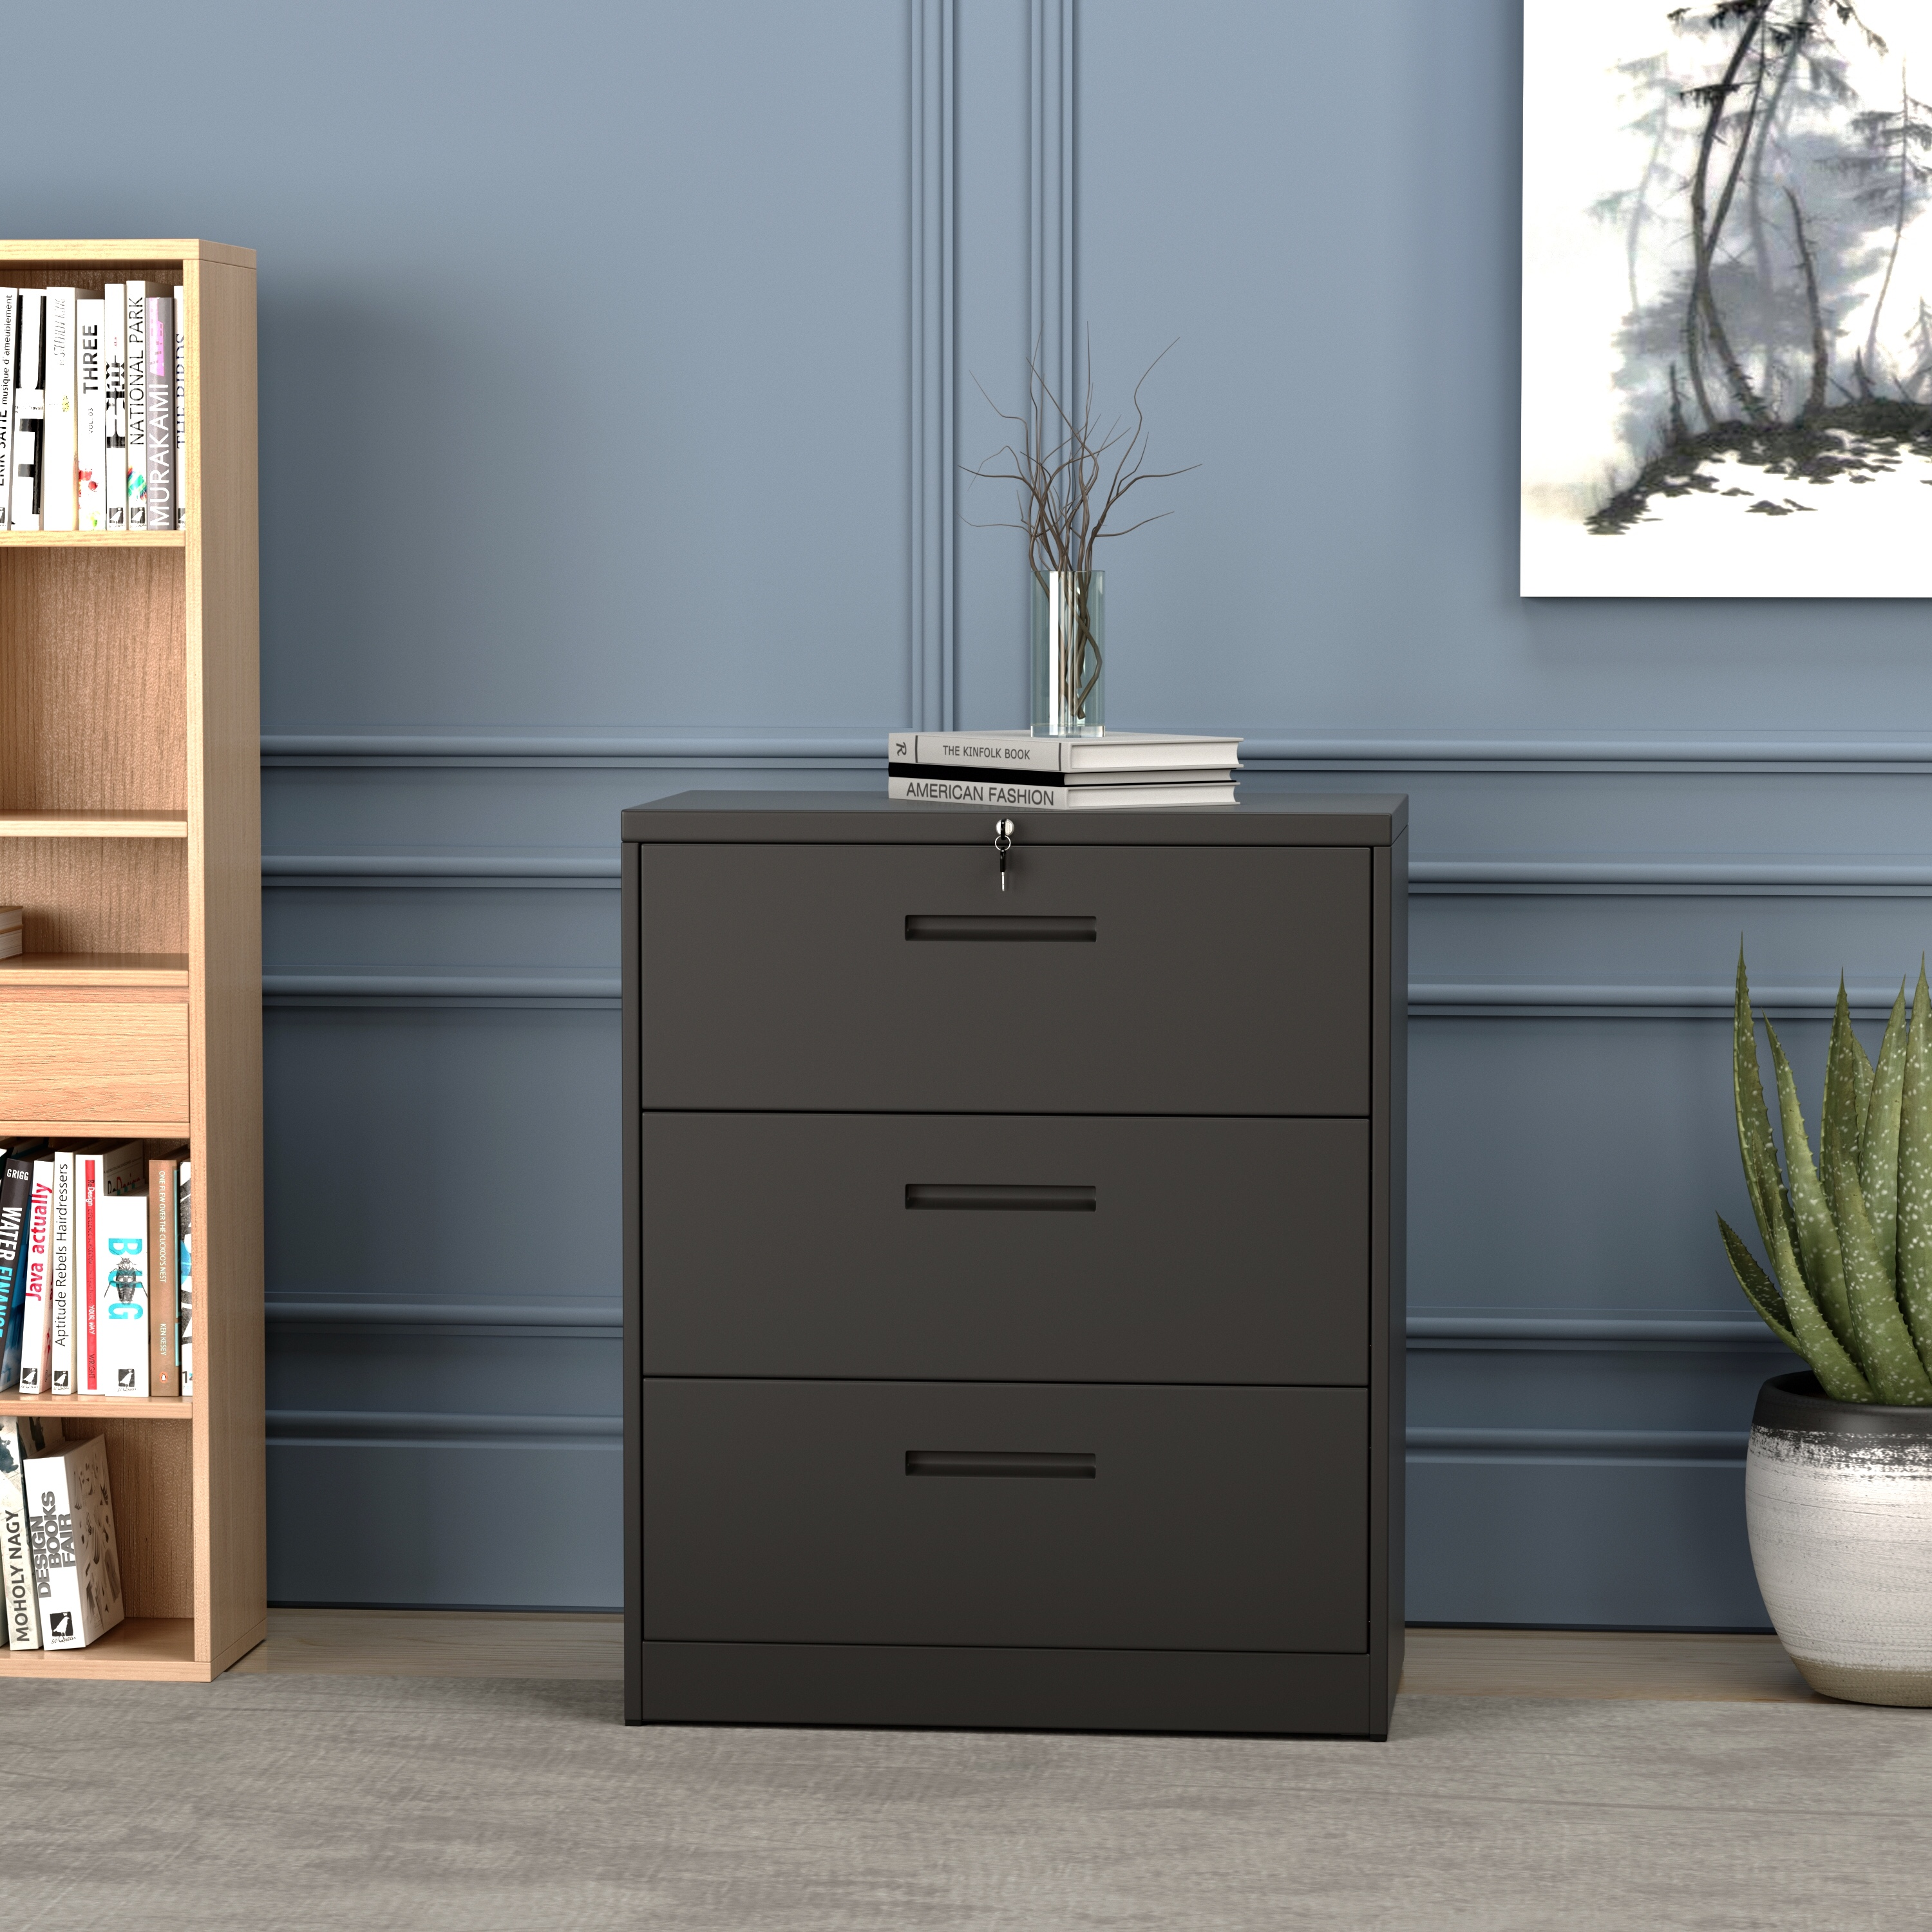 Lockable Metal 3 Drawer Lateral File Cabinet